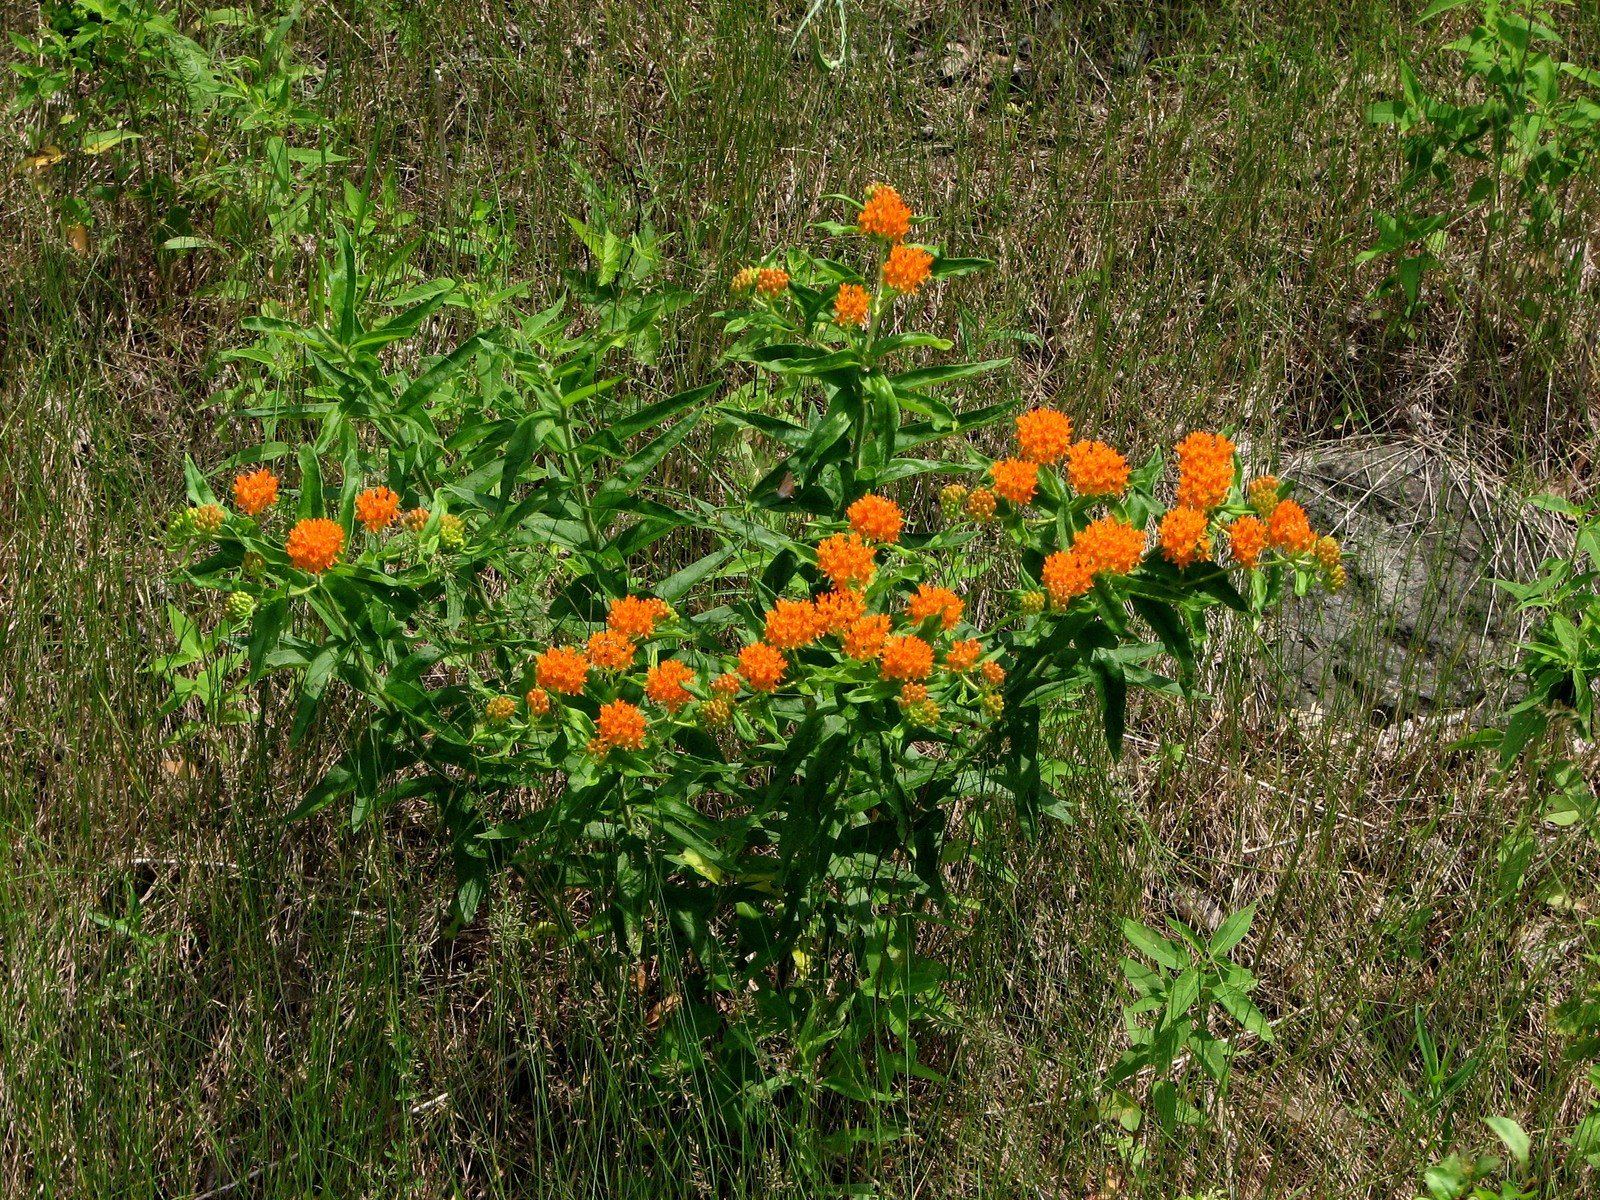 20080707133709 butterfly weed or orange milkweed asclepias tuberosa 20080707133709 butterfly weed or orange milkweed asclepias tuberosa oakland county michigan publicscrutiny Gallery